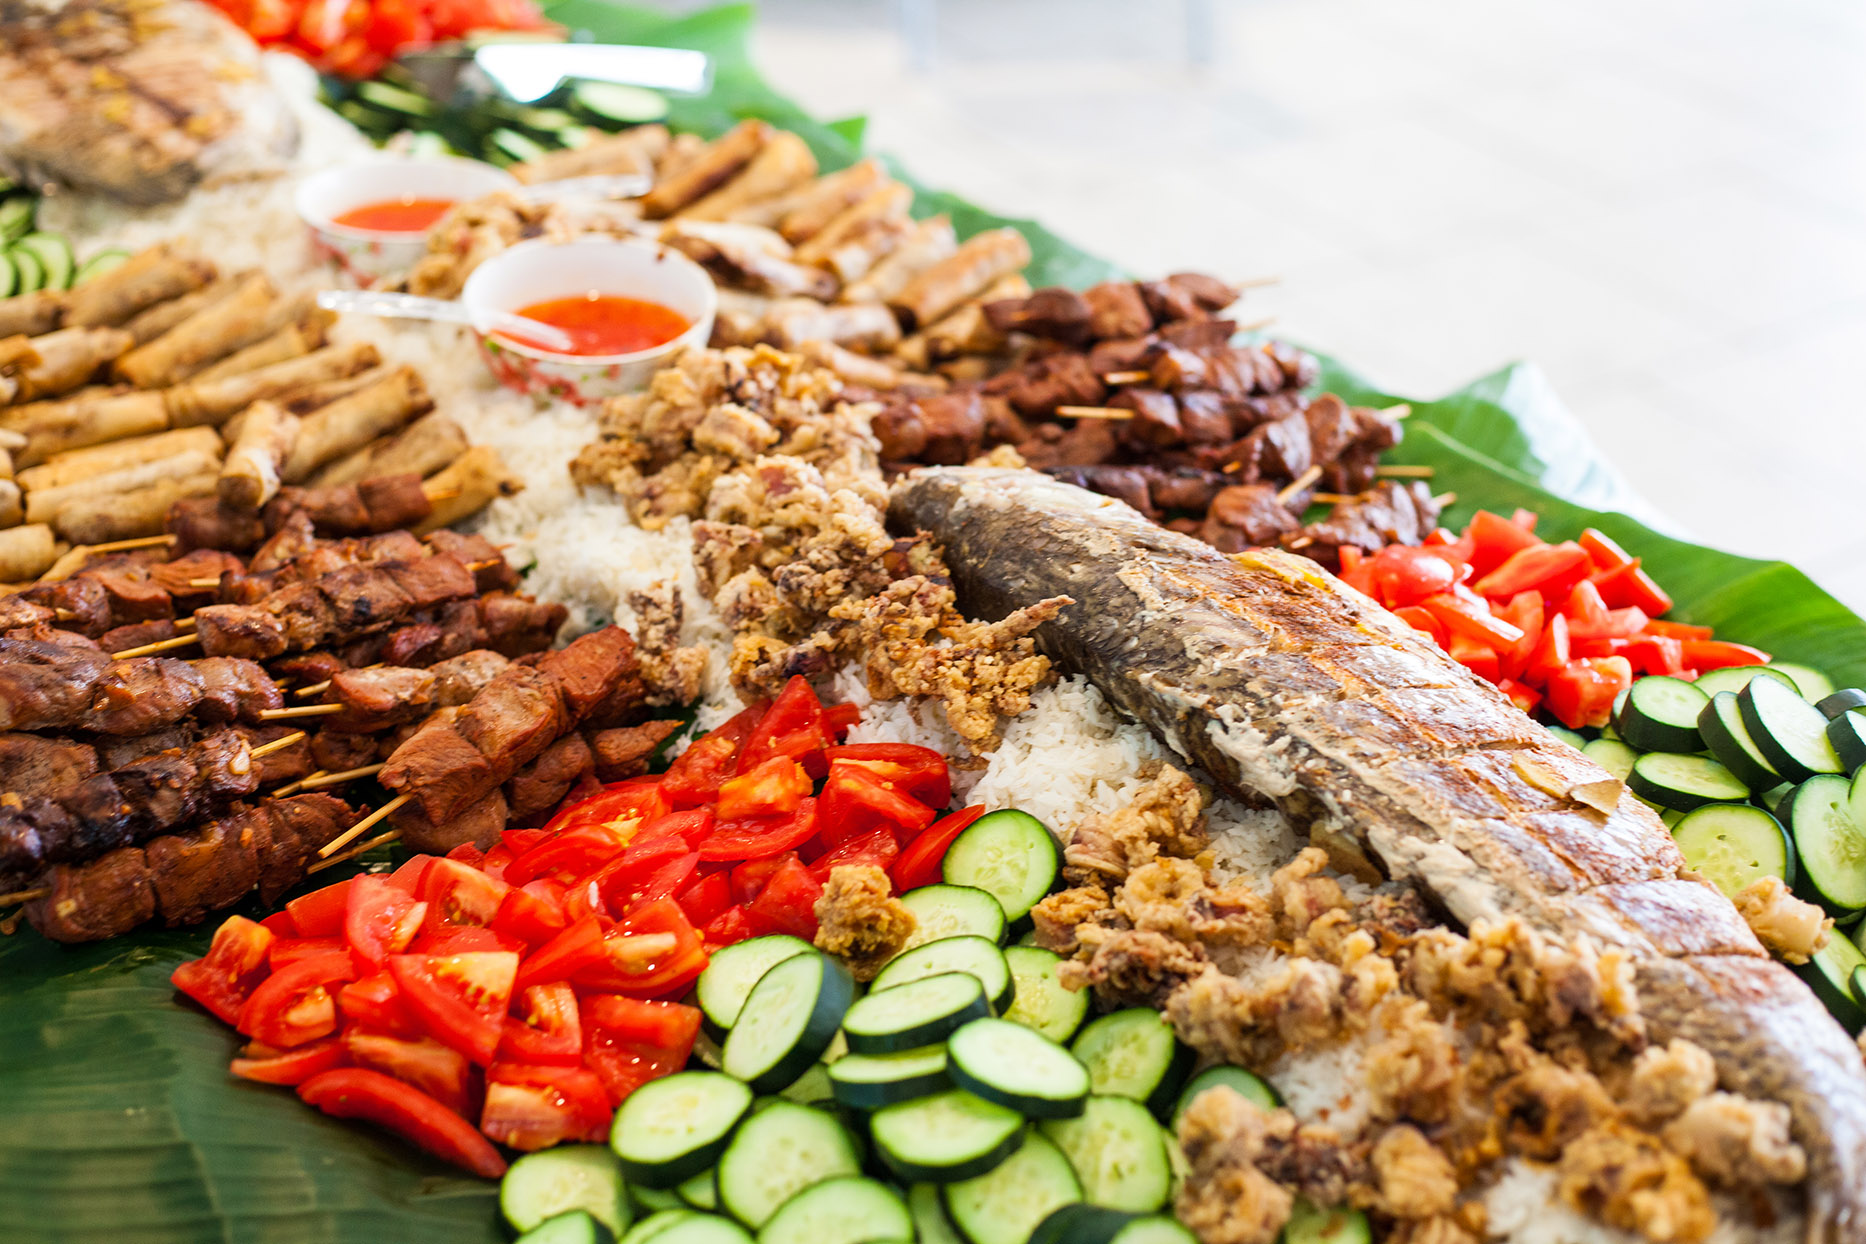 whole cooked fish on top of vegetables and meat